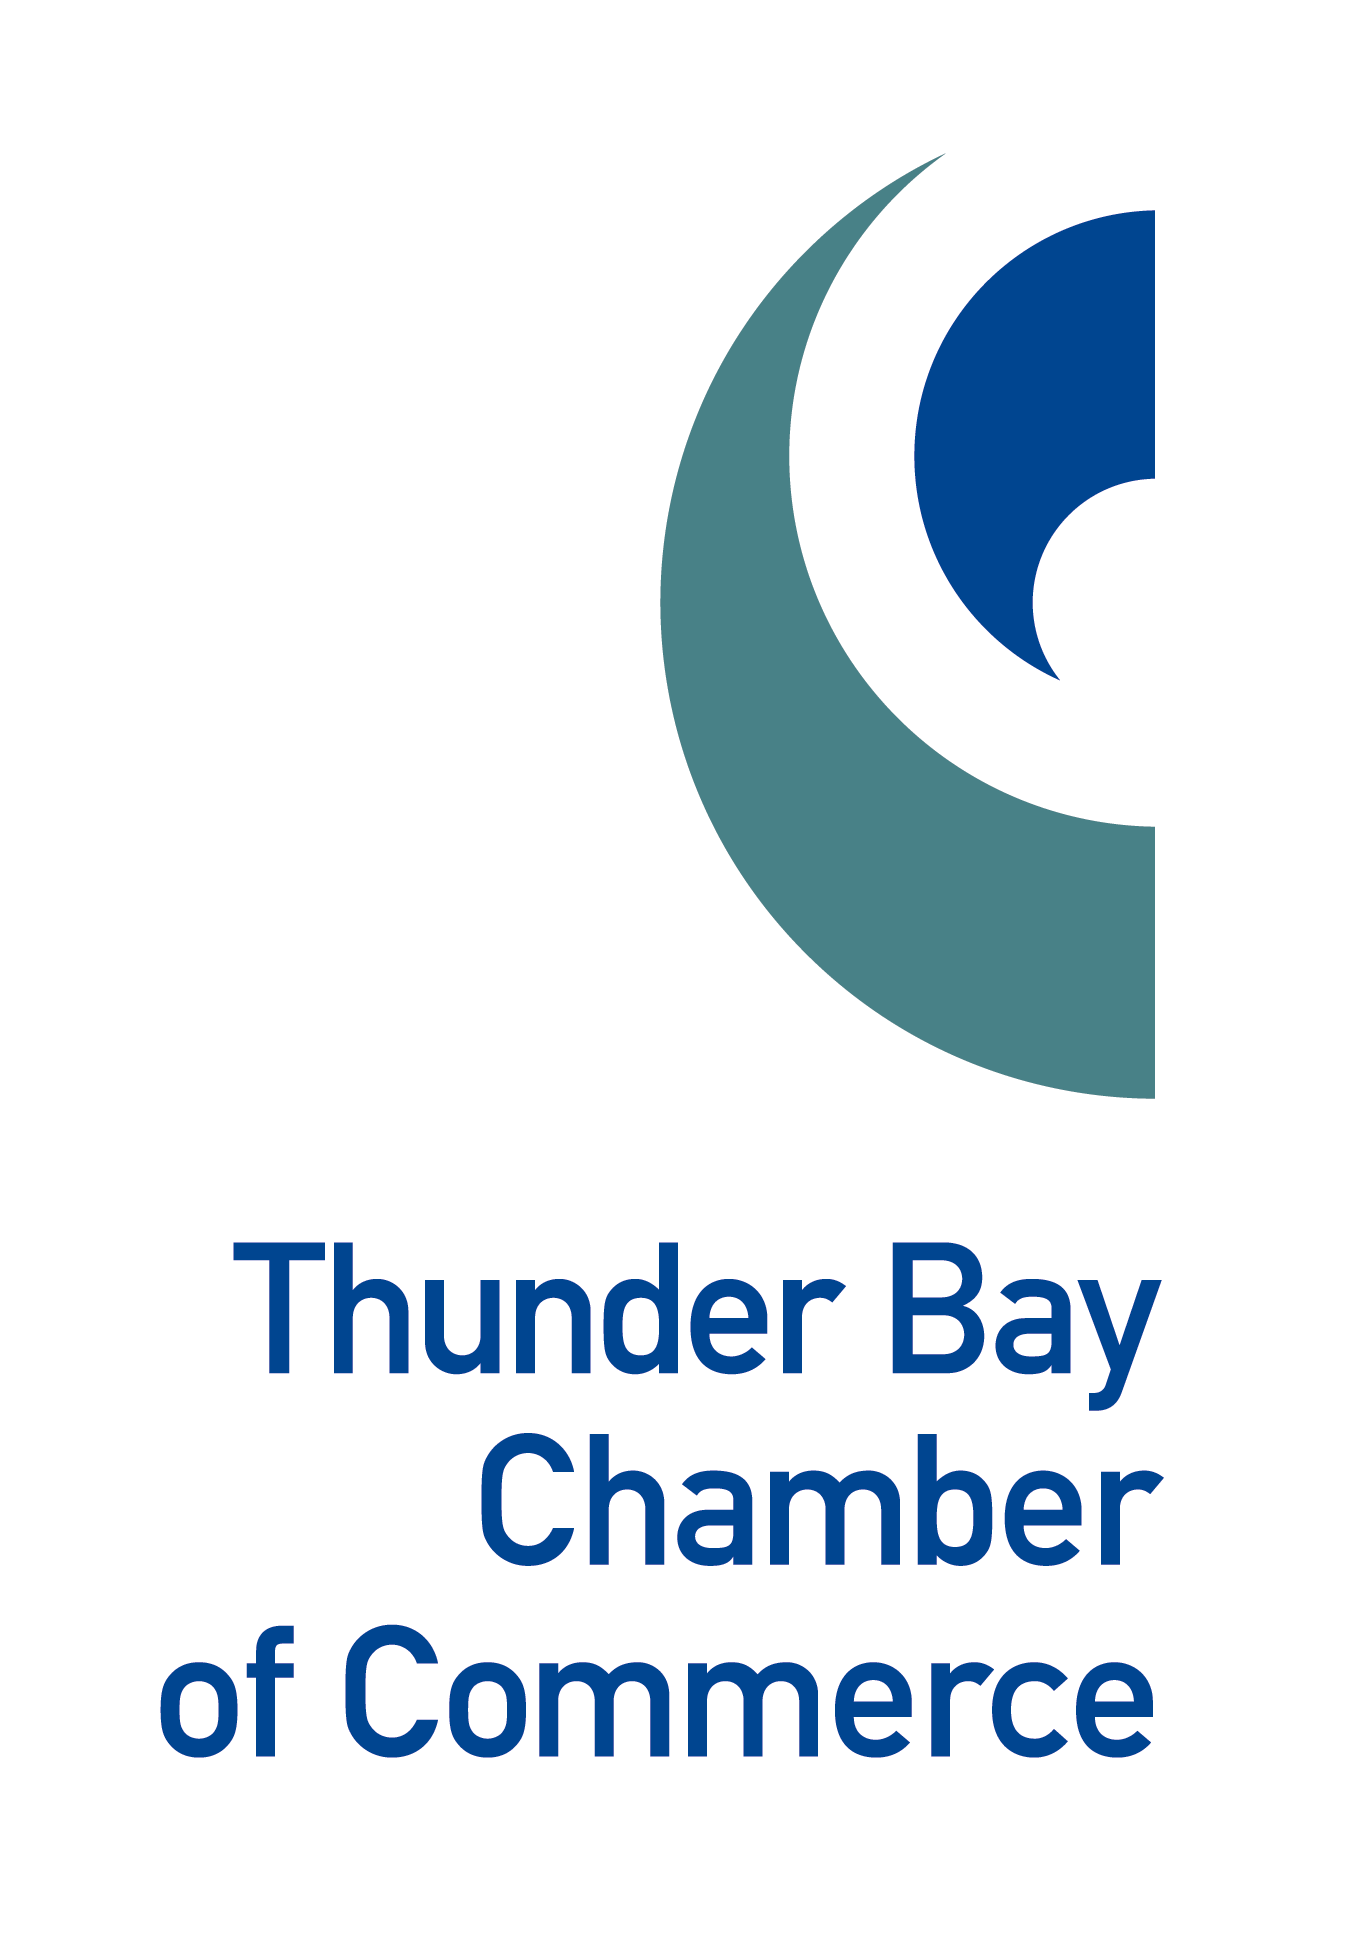 Thunder Bay Chamber of Commerce